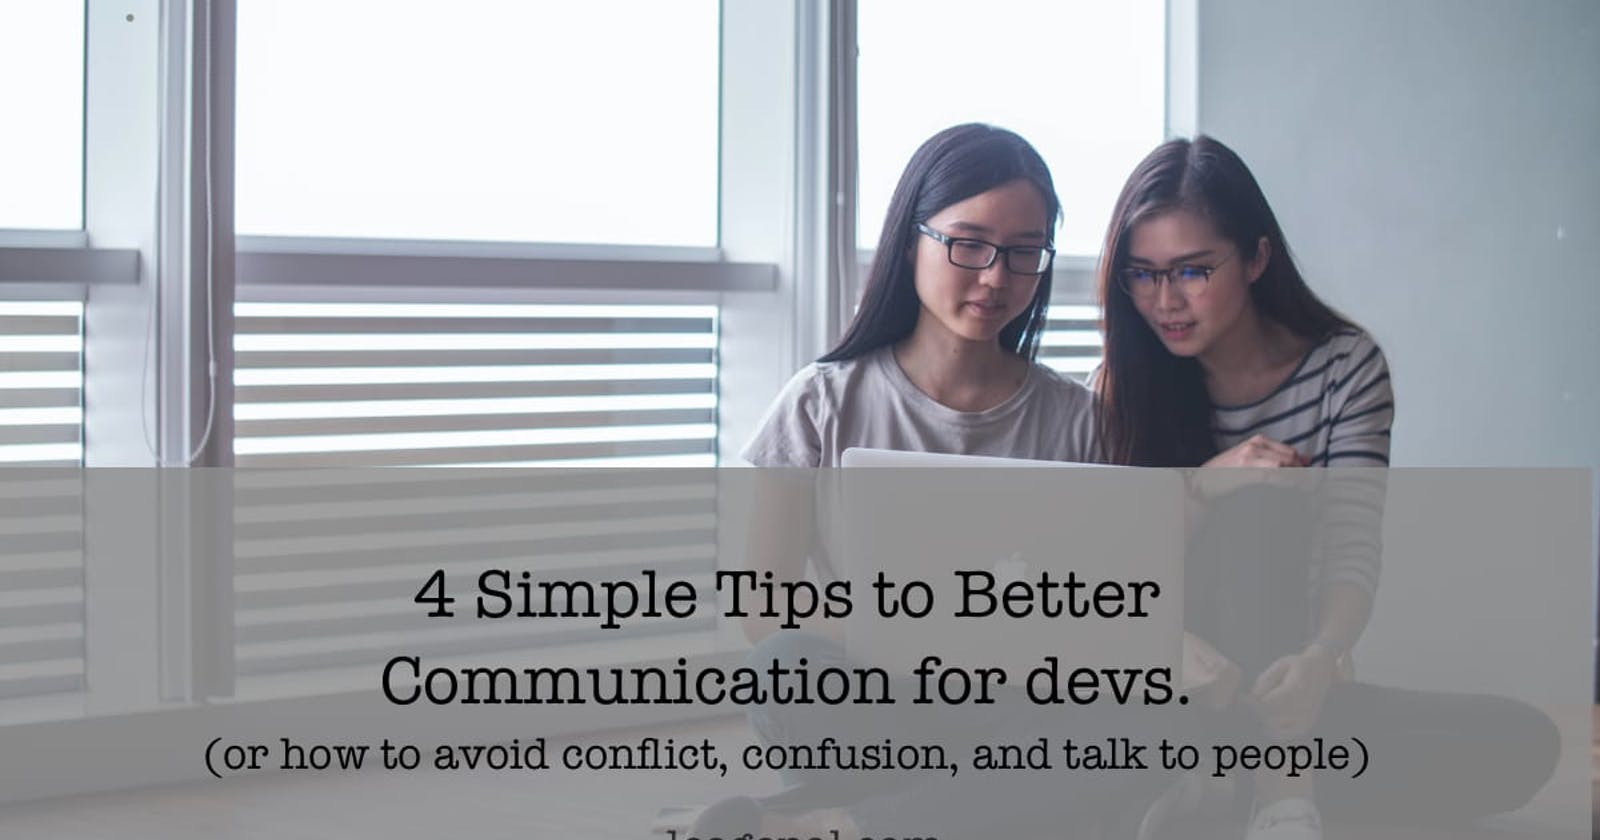 4 Simple Tips to Better Communication for devs. (or how to avoid conflict, confusion, and talk to people).